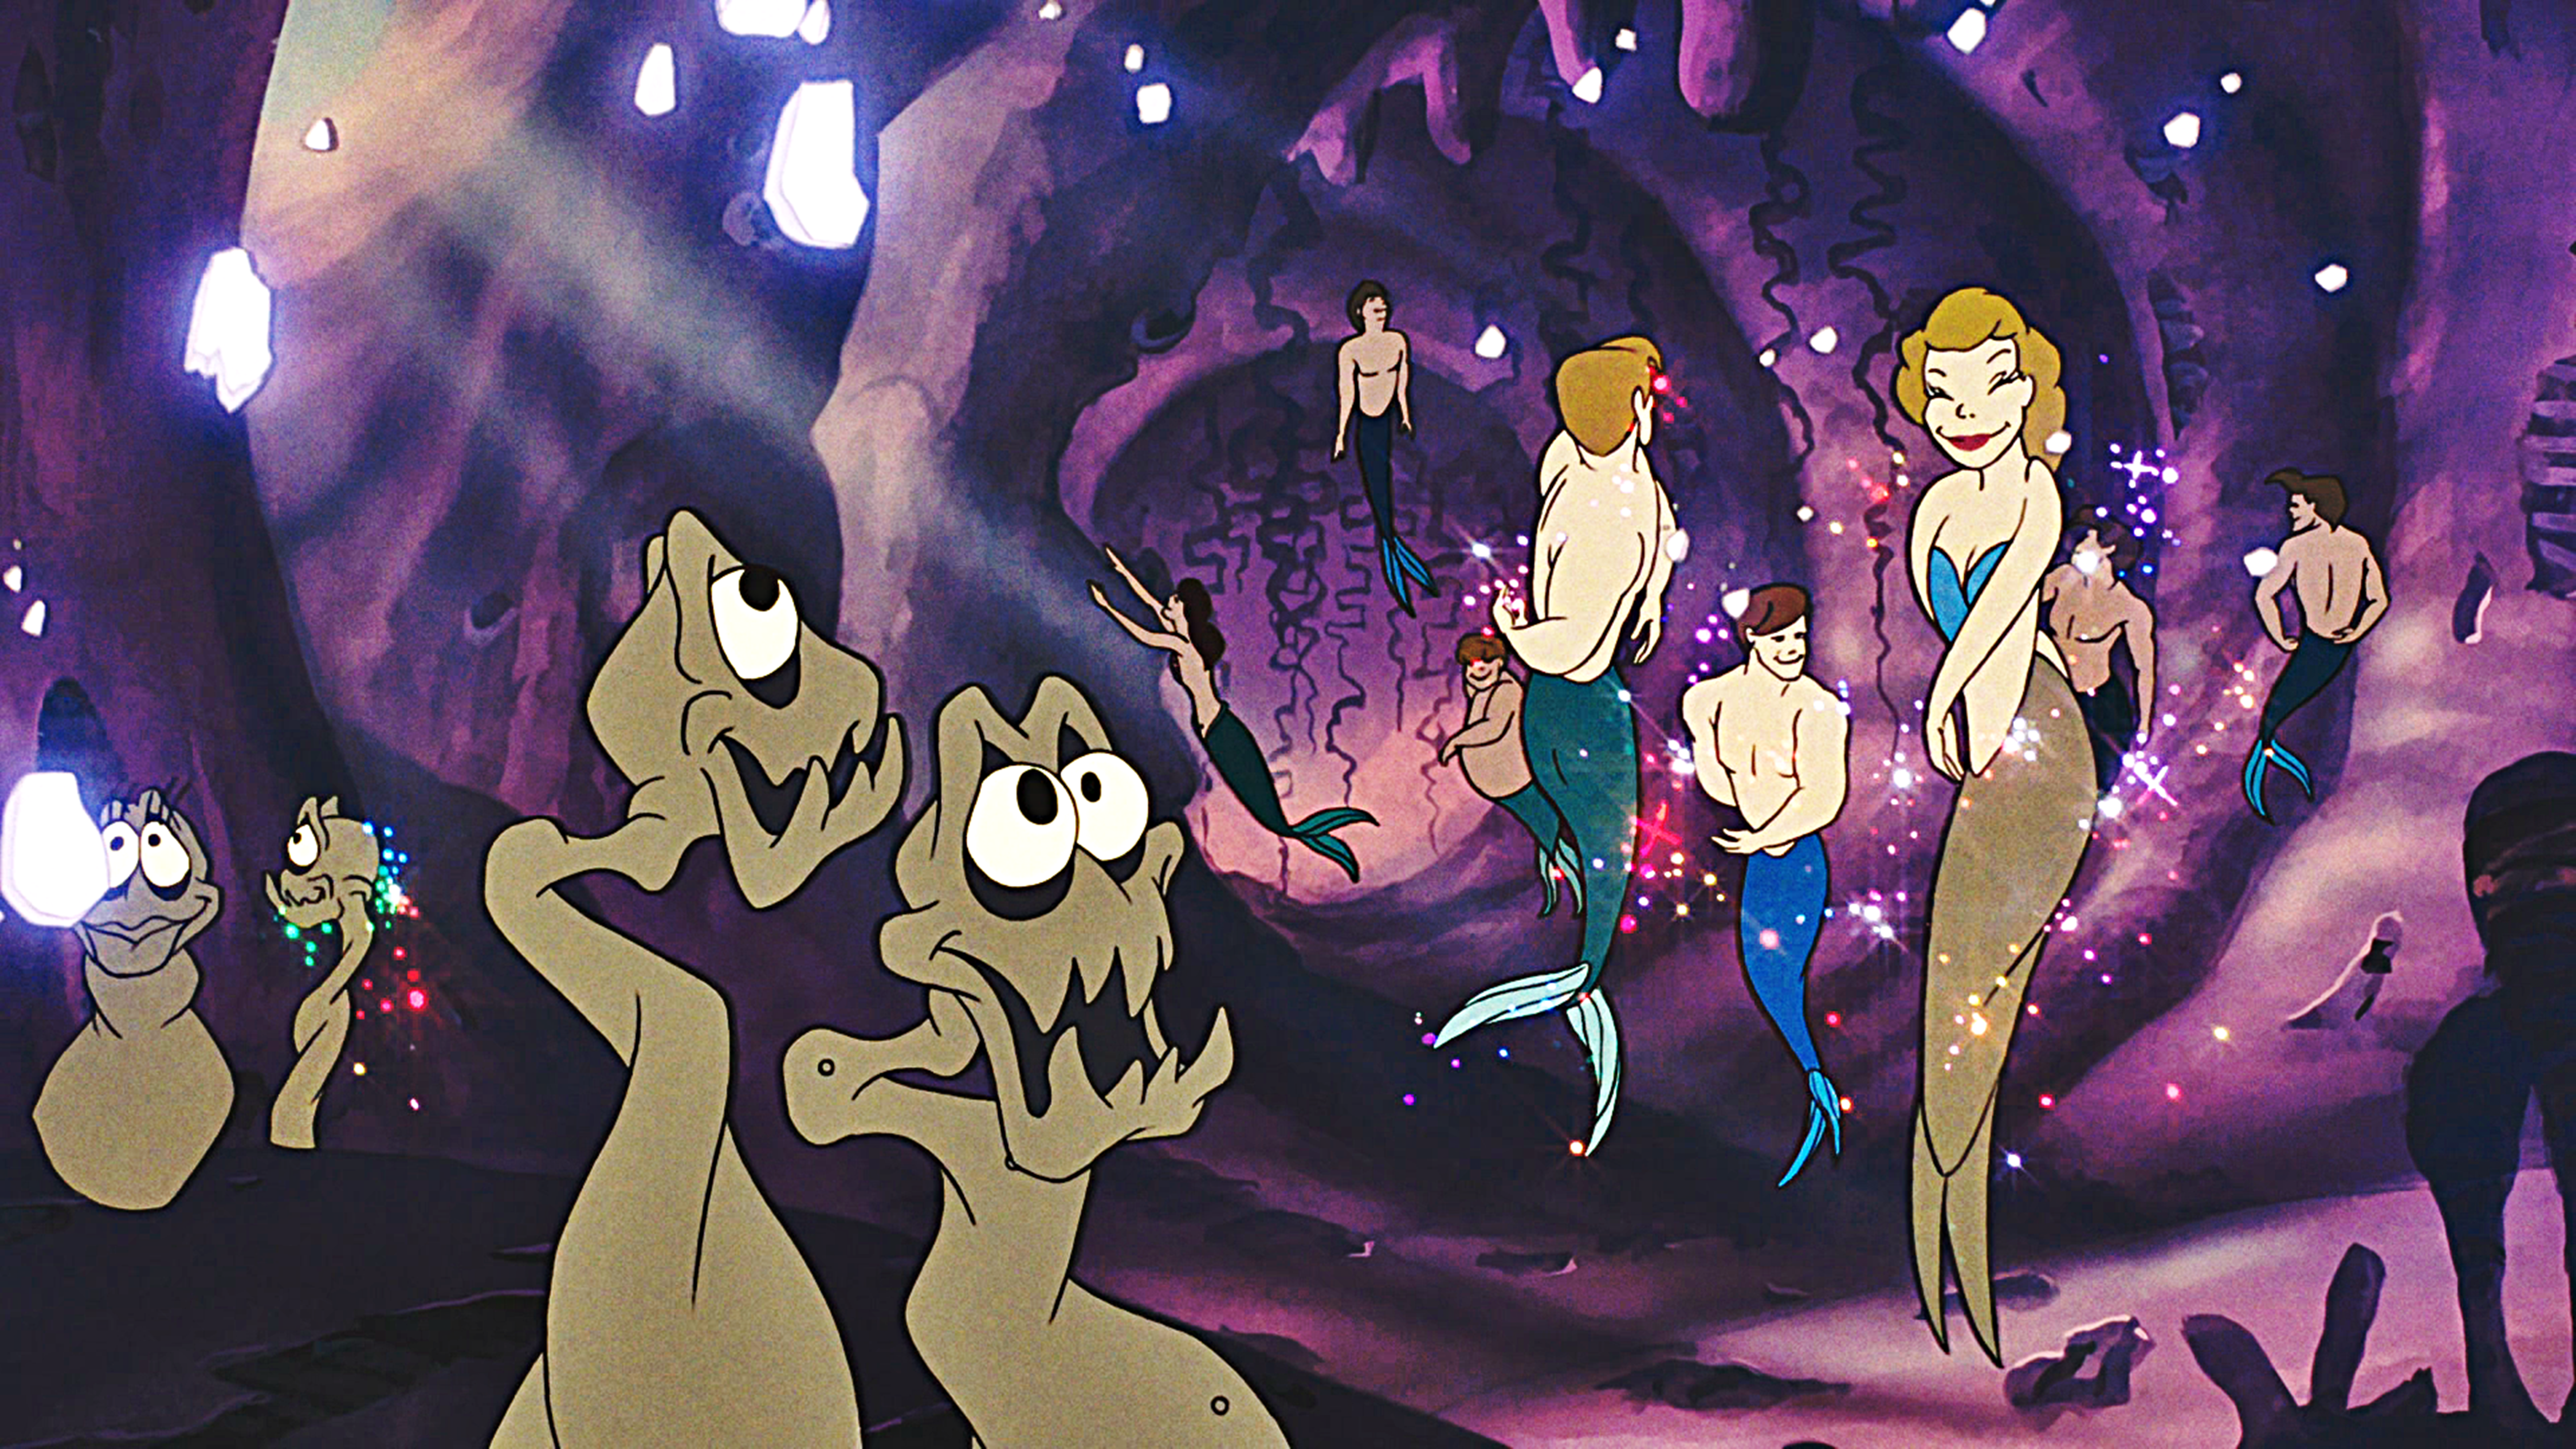 Walt Disney Screencaps The Polyps The Merpeople walt disney characters 37248298 5760 3240 along with frozen characters coloring pages 1 on frozen characters coloring pages also with menchie s frozen yogurt characters on frozen characters coloring pages in addition frozen characters coloring pages 3 on frozen characters coloring pages further frozen characters coloring pages 4 on frozen characters coloring pages